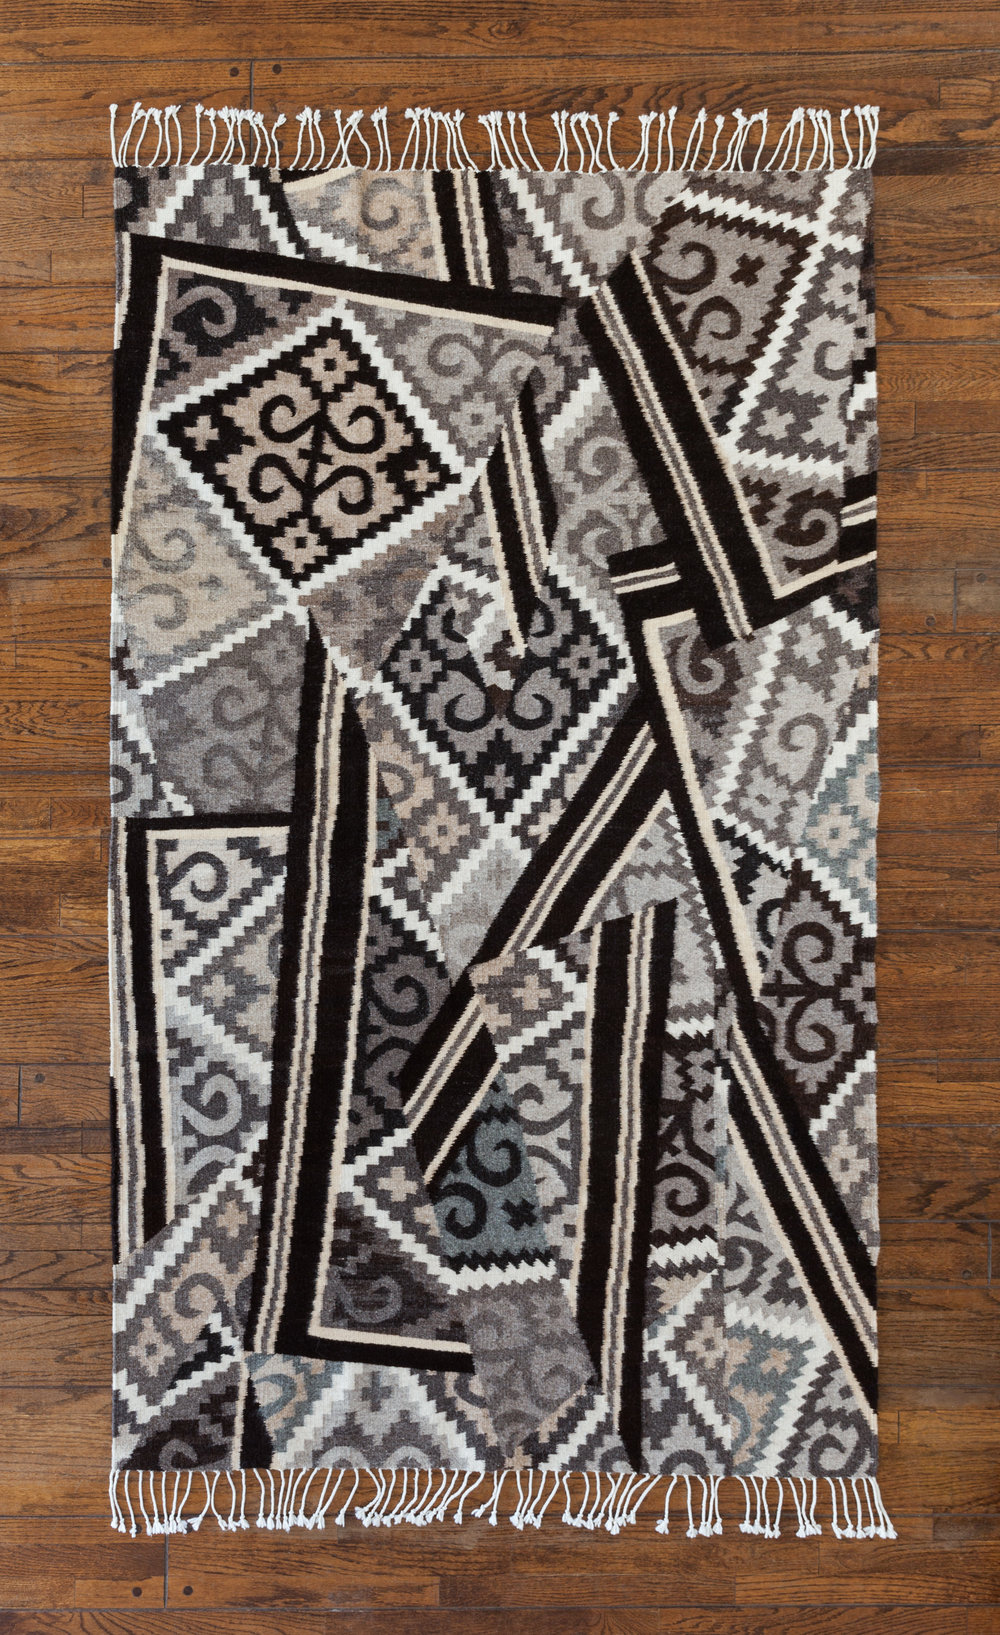 Zapotec Cut-out VII, 2014